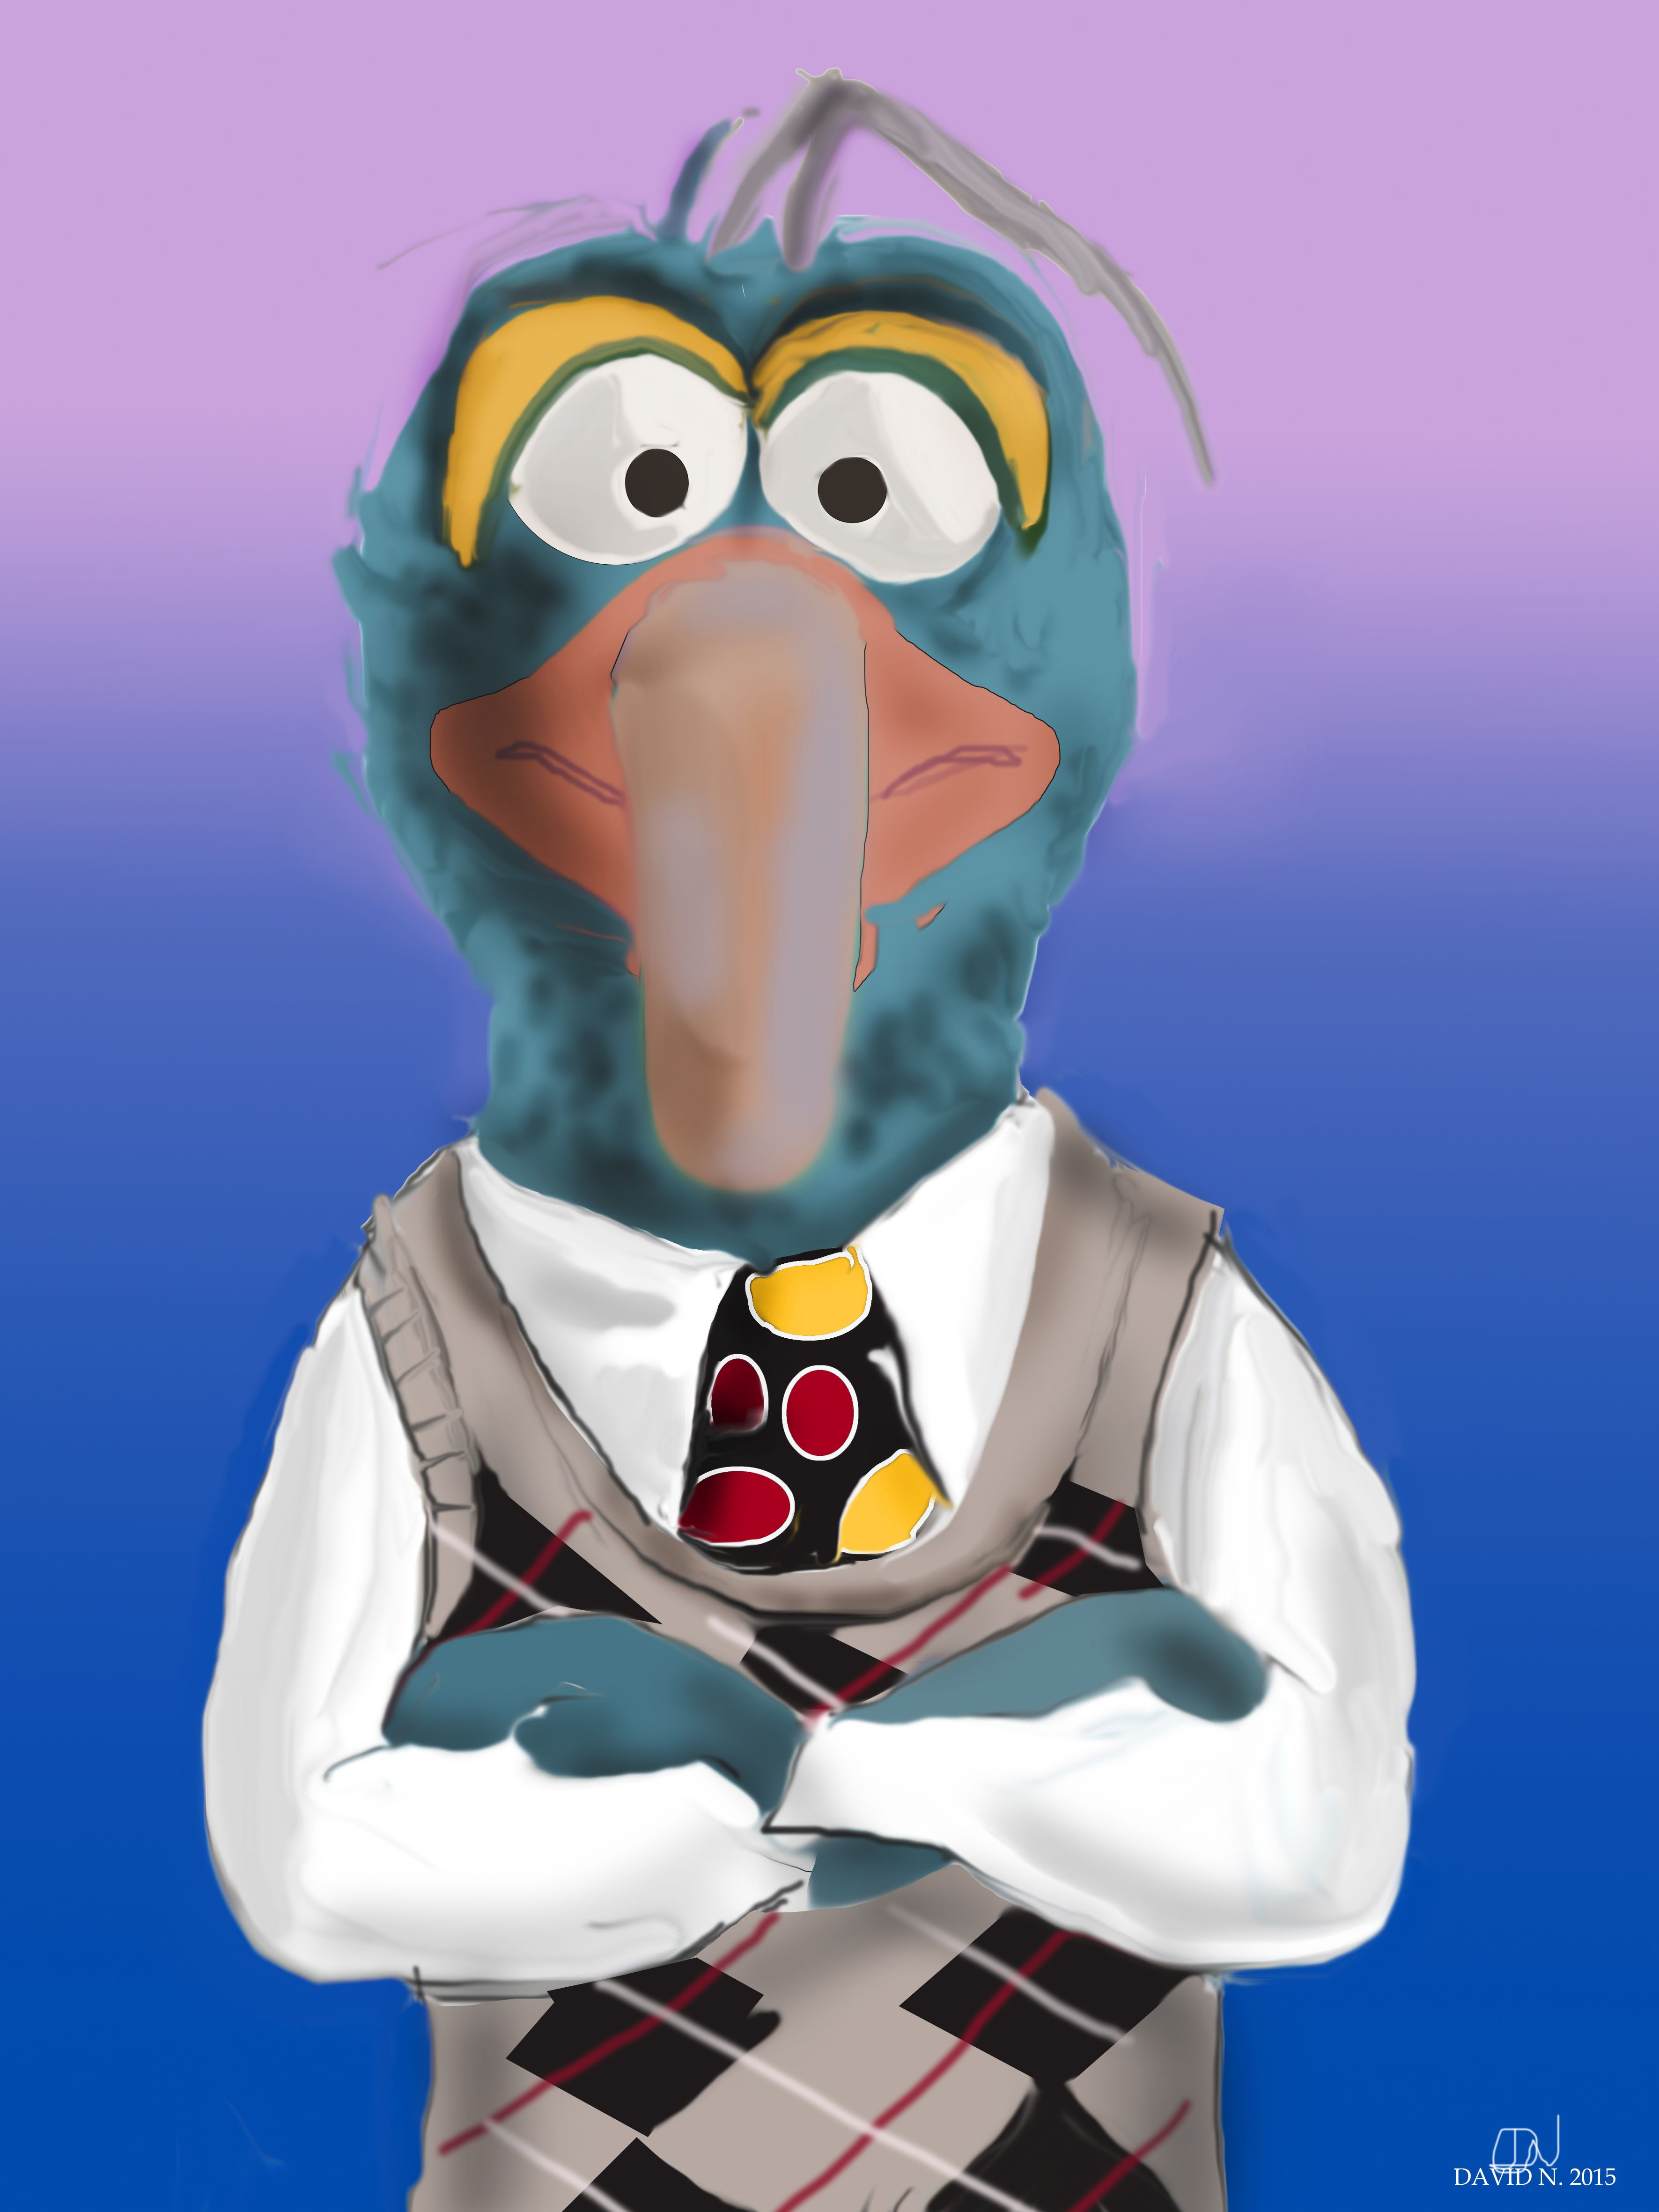 Gonzo (The Muppets Show) Hyper Realistic Drawing. 60x80